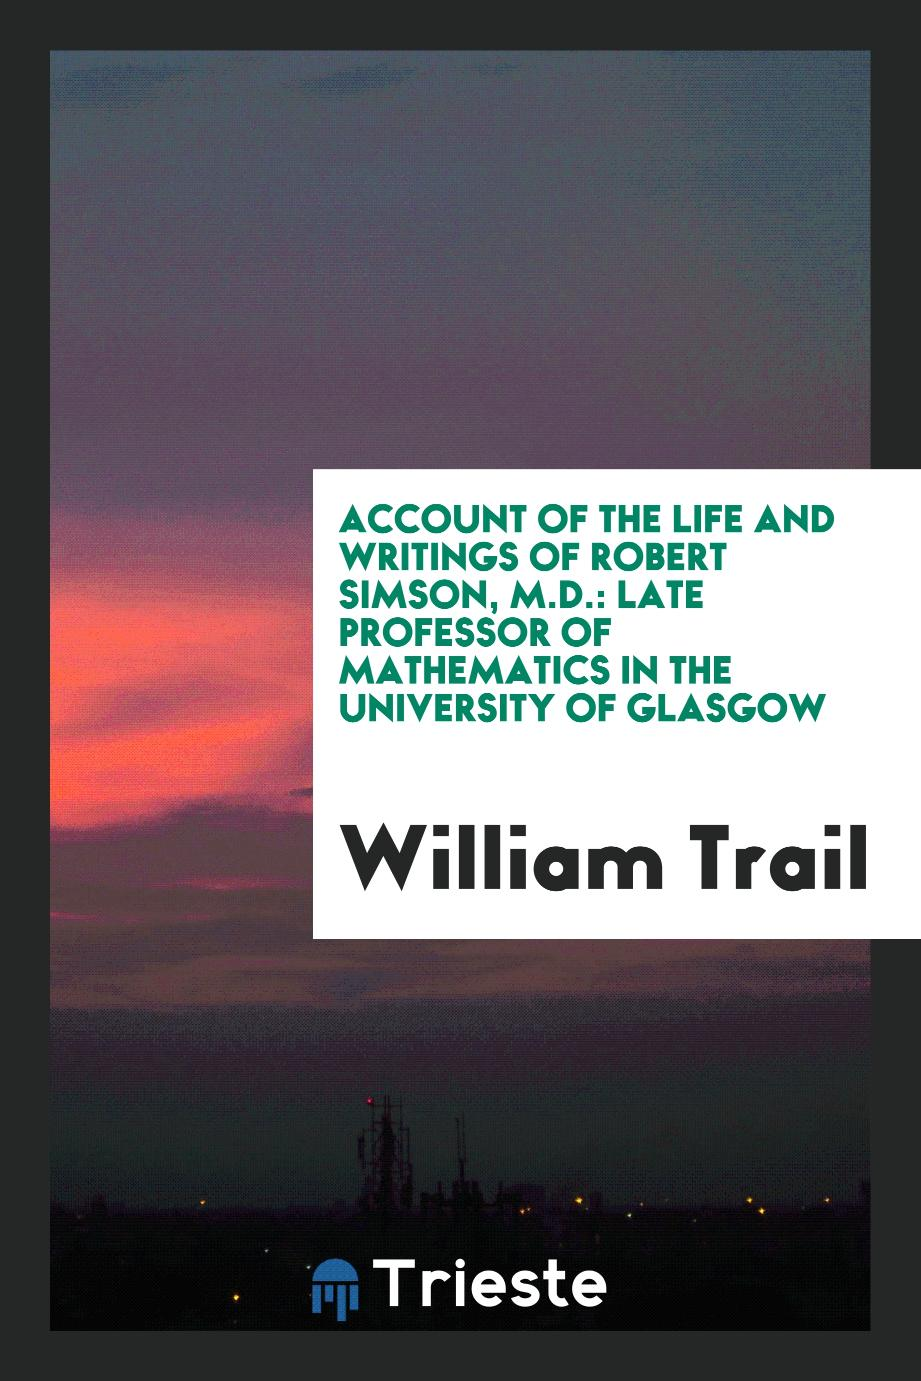 Account of the Life and Writings of Robert Simson, M.D.: Late Professor of Mathematics in the University of Glasgow